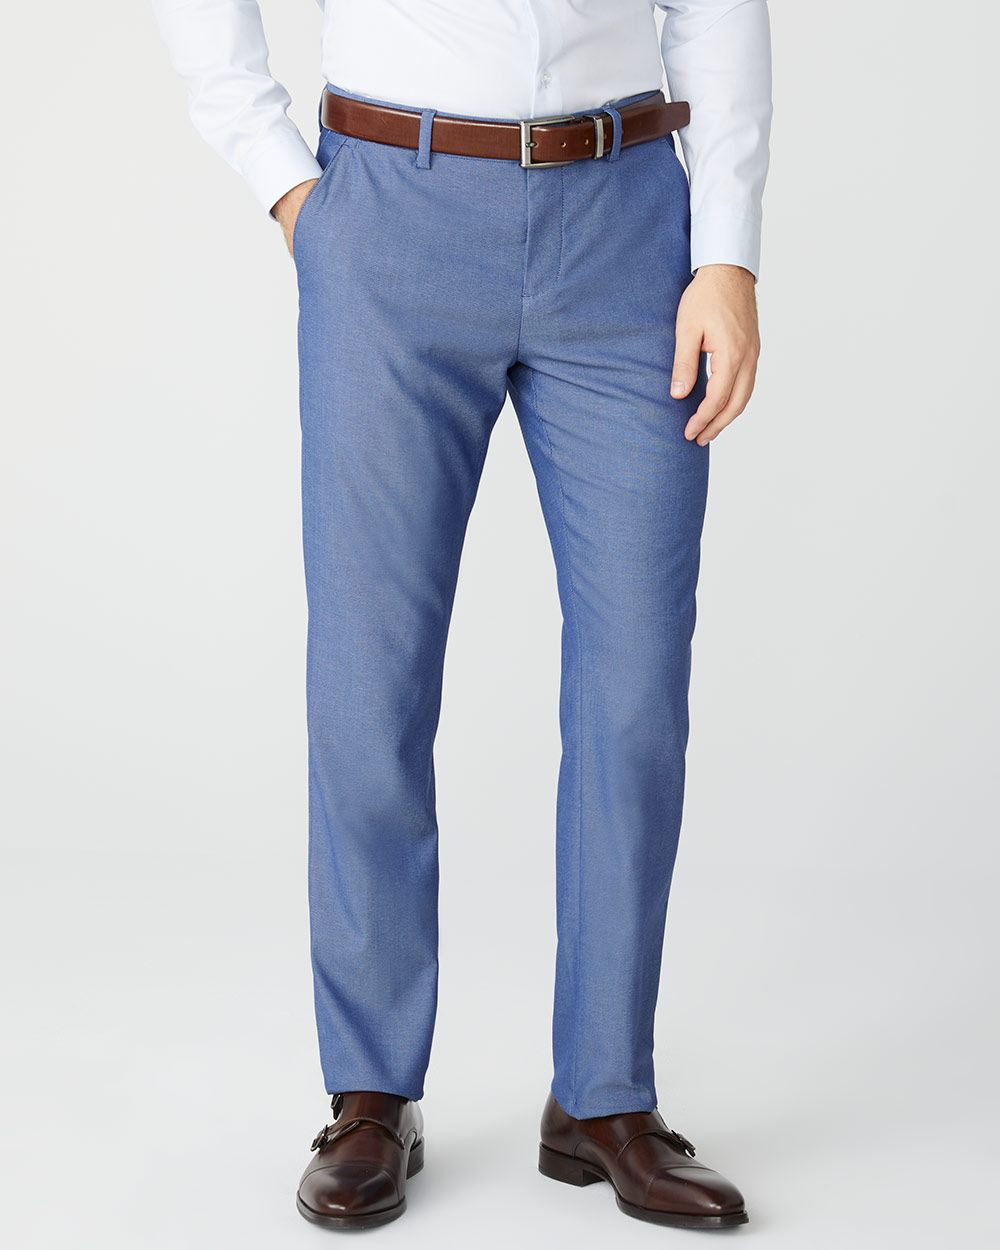 Tailored fit Light blue City Pant - 30''